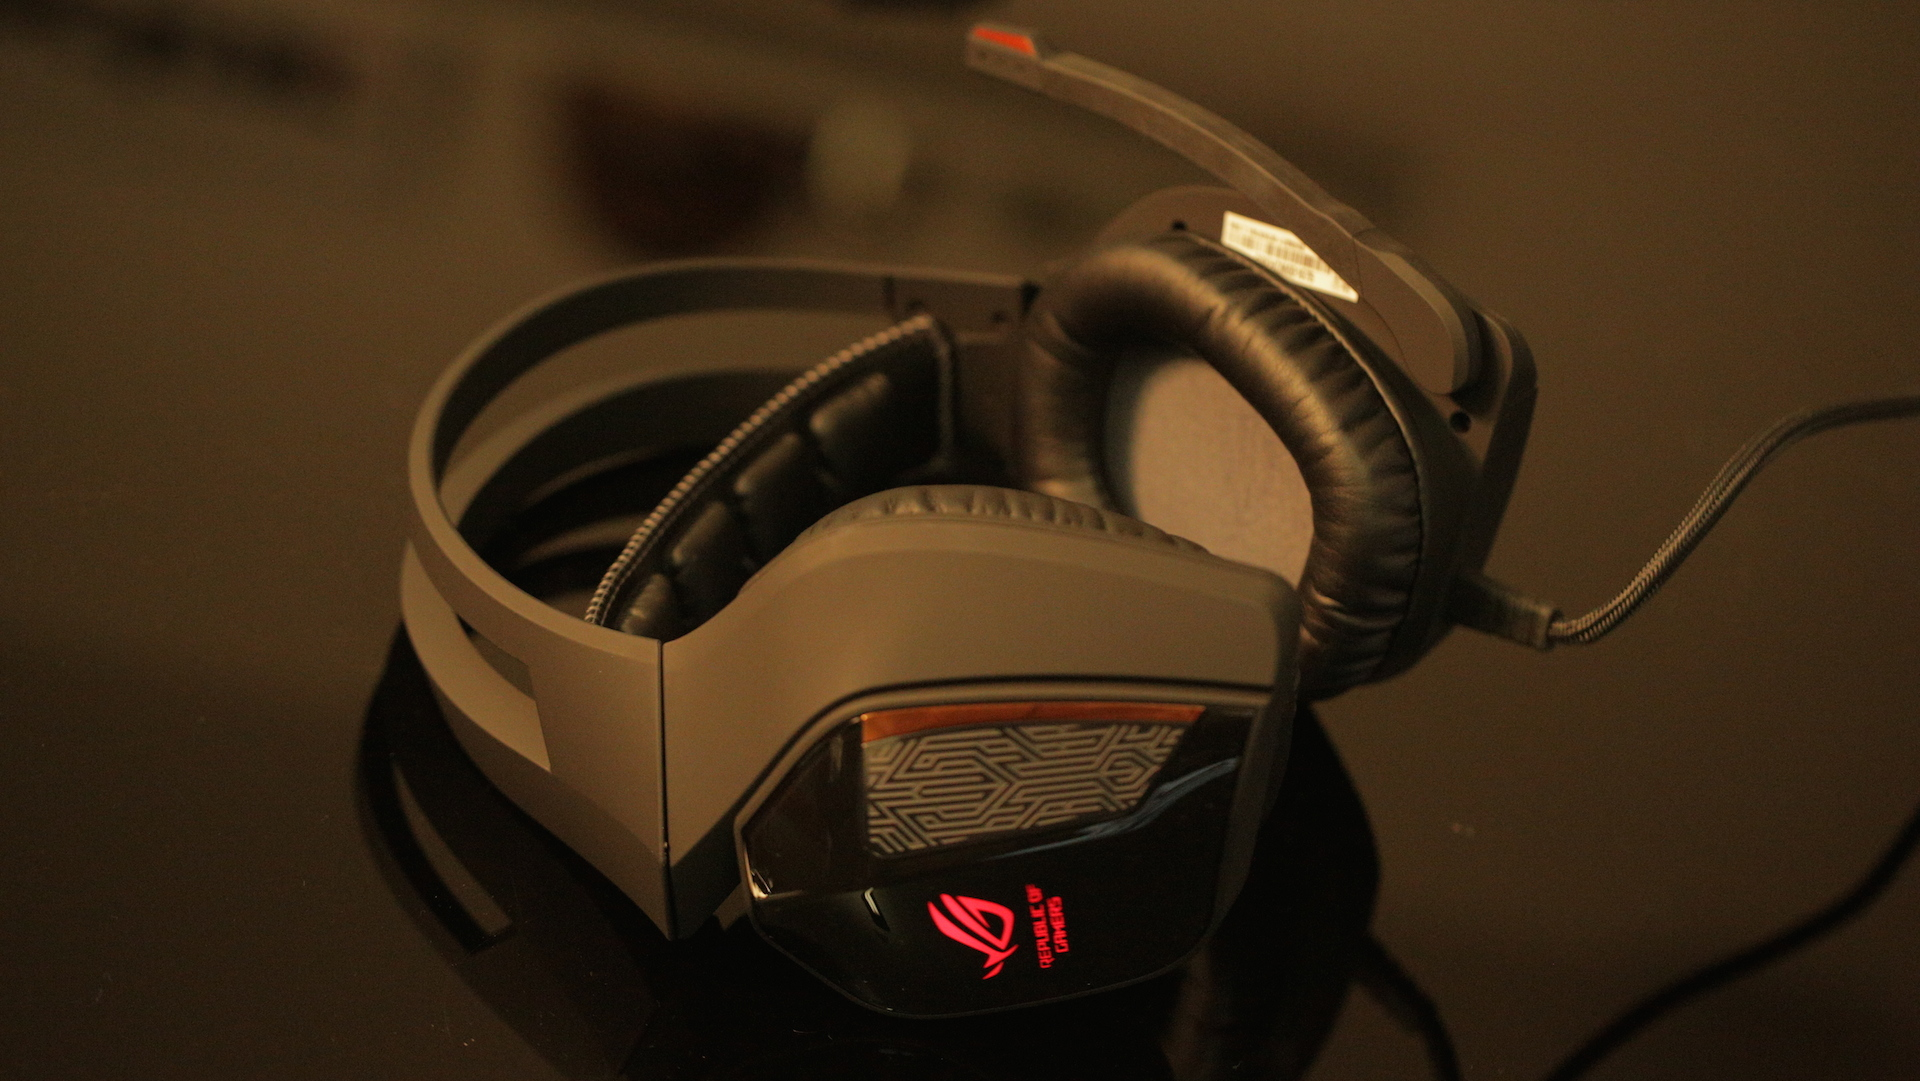 9de3db79e4f Neglecting all the unwritten rules of fashion, the ROG Centurion 7.1 is a  spectacle to behold. Though it's a living hellscape to set up, this gaming  headset ...